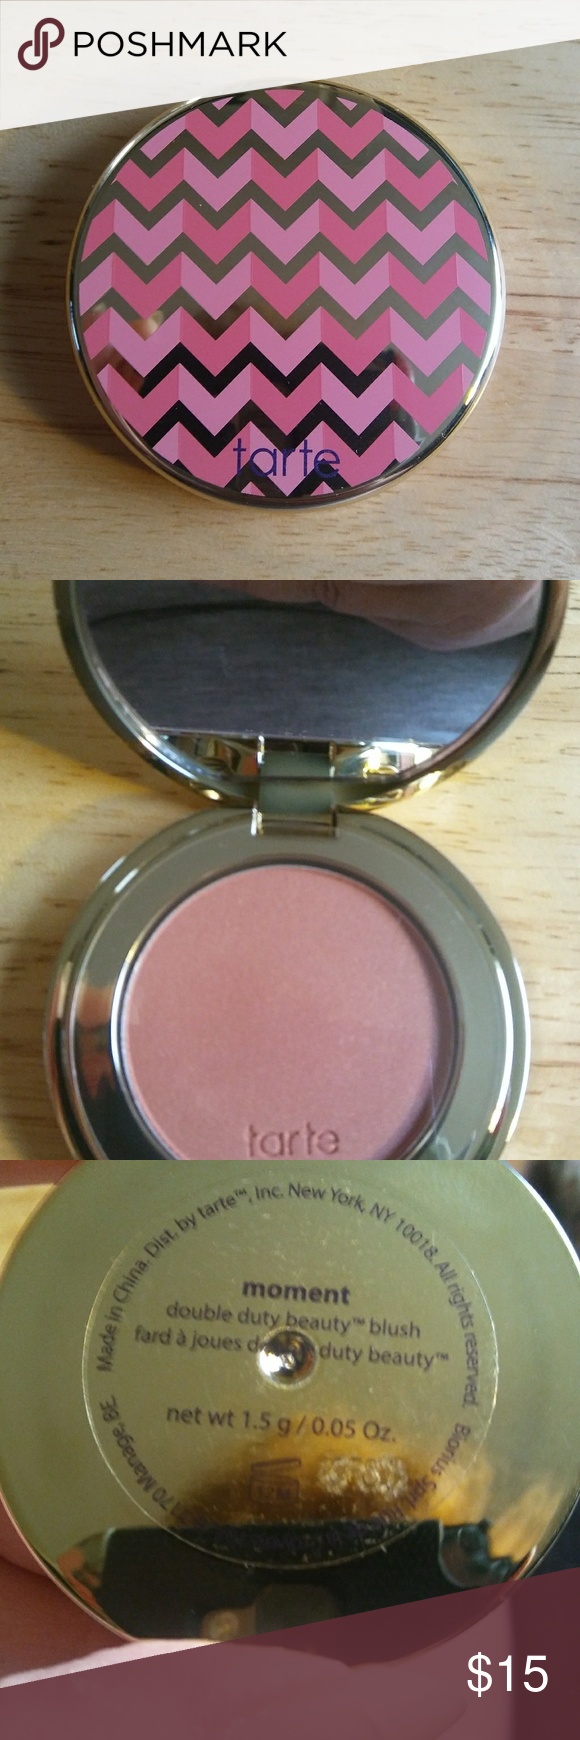 Blush Brand New Never Used Or Swatched Tartes Double Duty Beauty Blush In The Shade Moment Comes In An Adorable Mirrored Blush Makeup Blush Beauty Blush